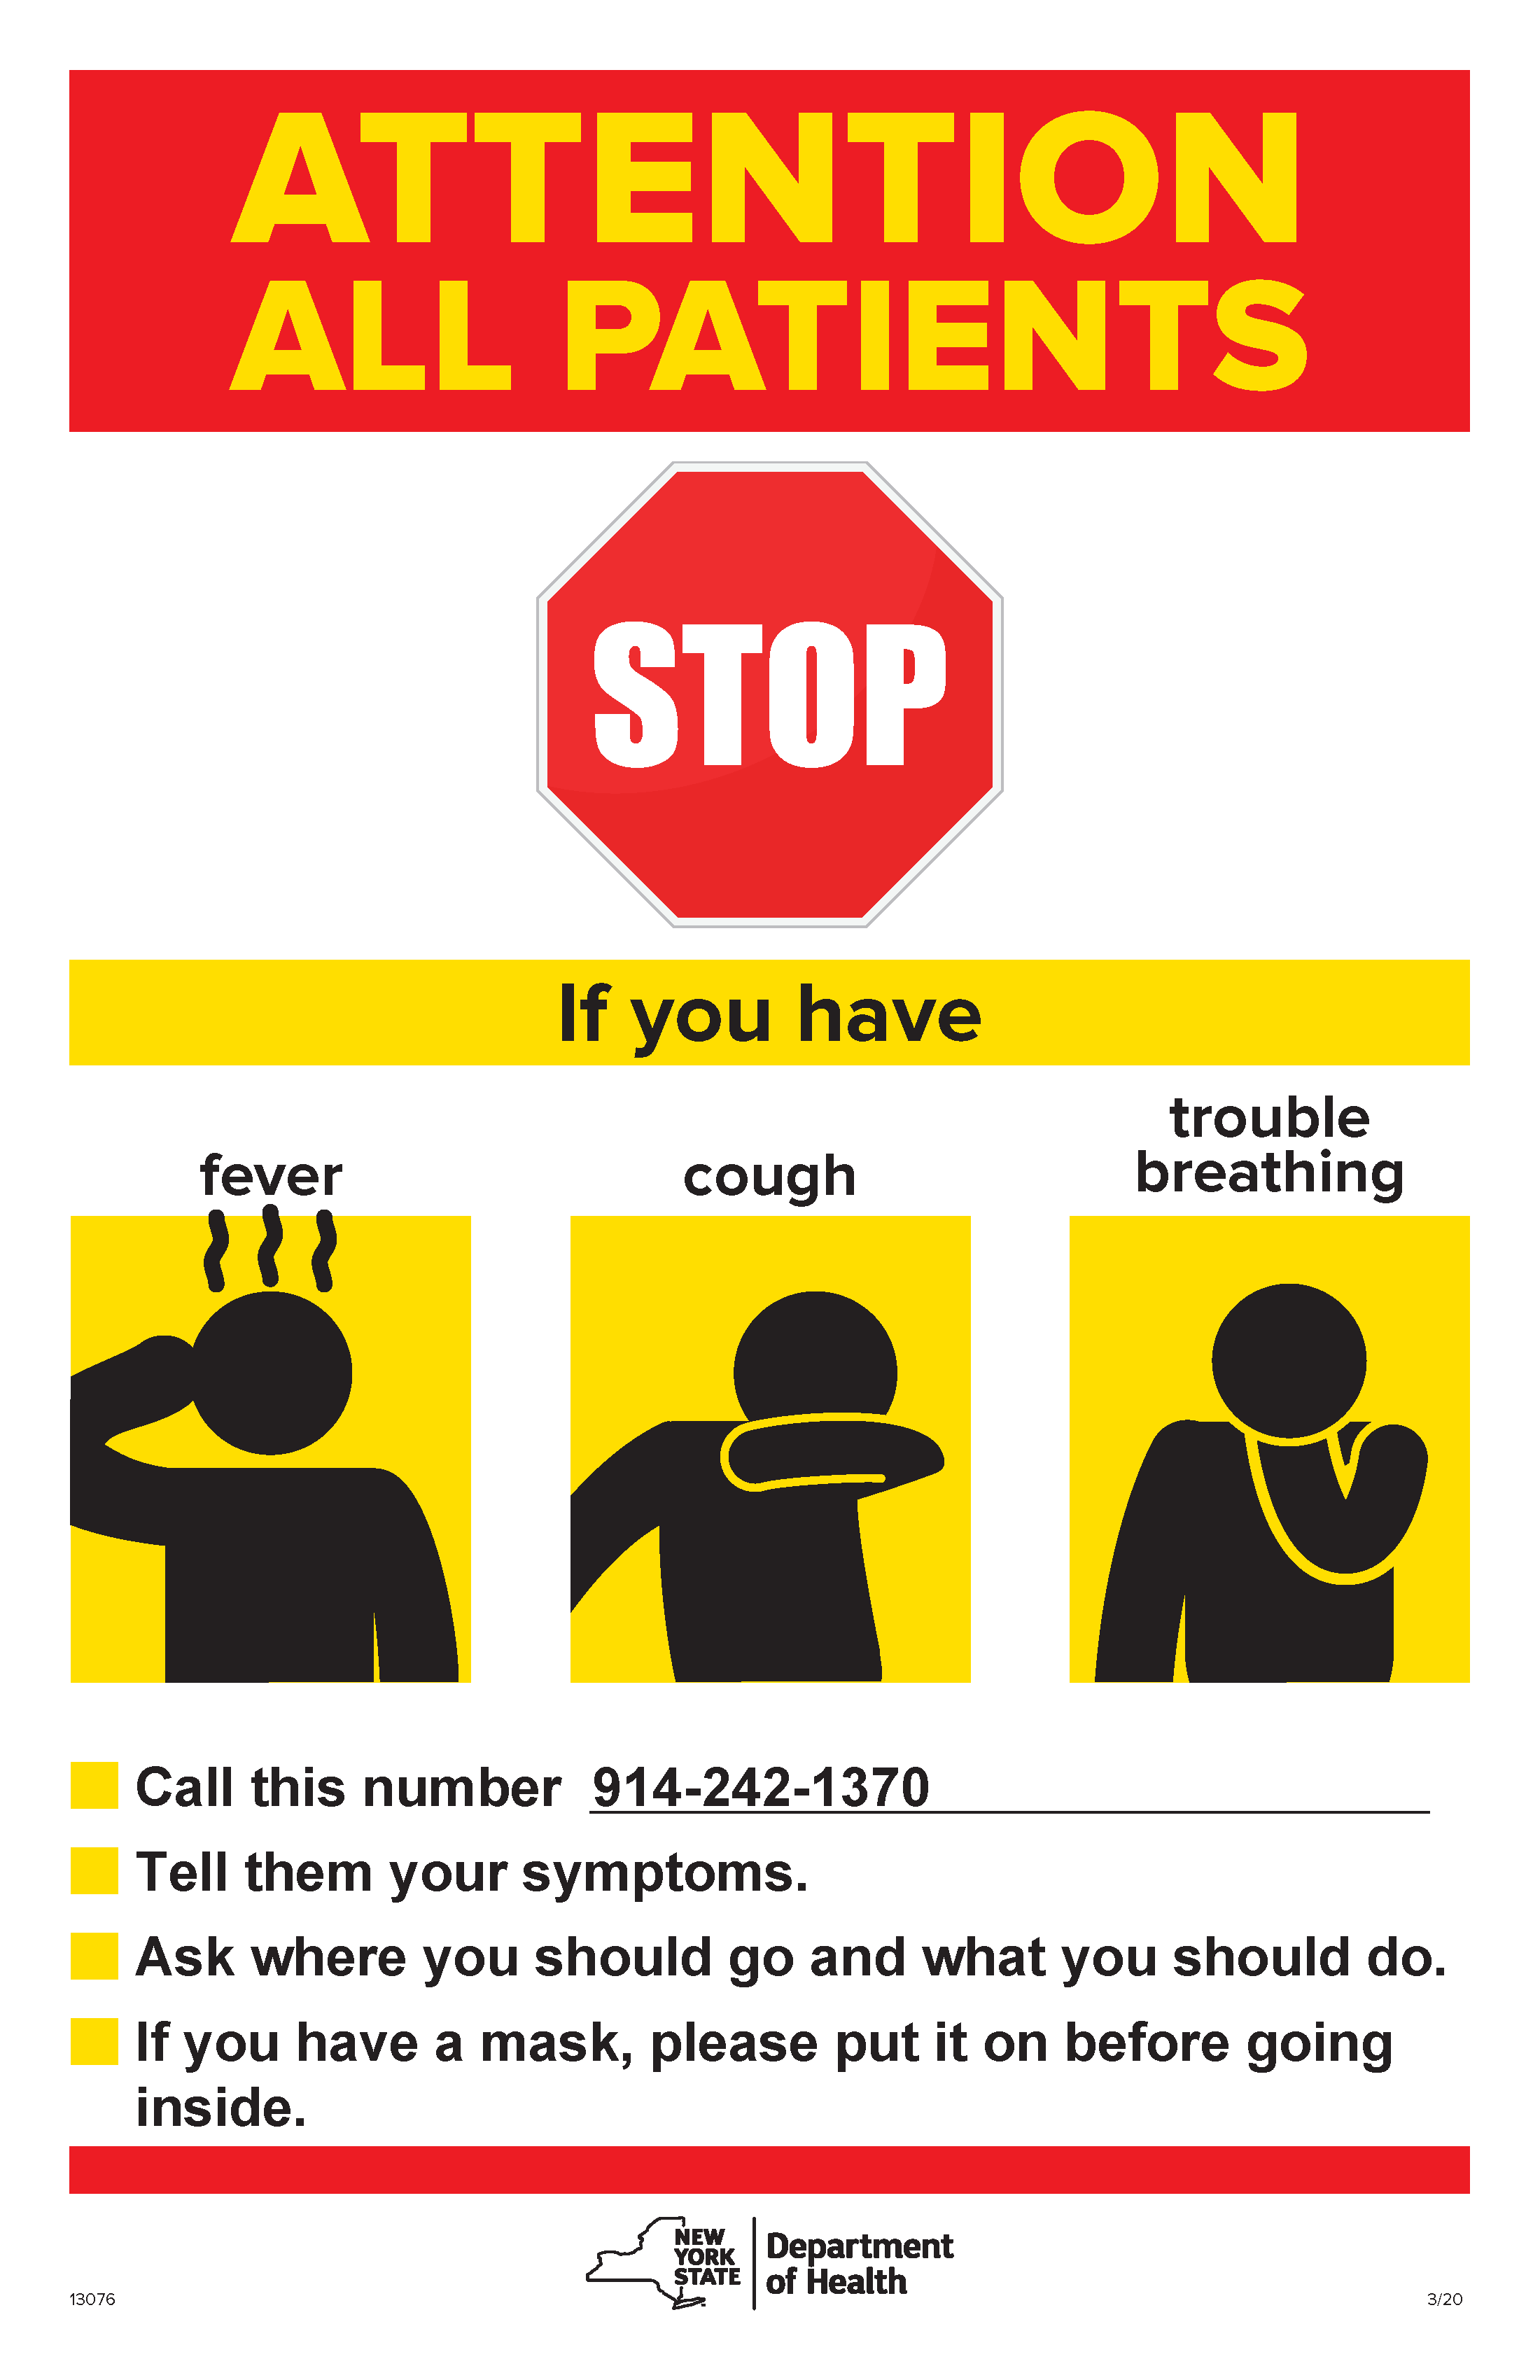 Stop before you enter if you have a fever, cough or trouble breathing